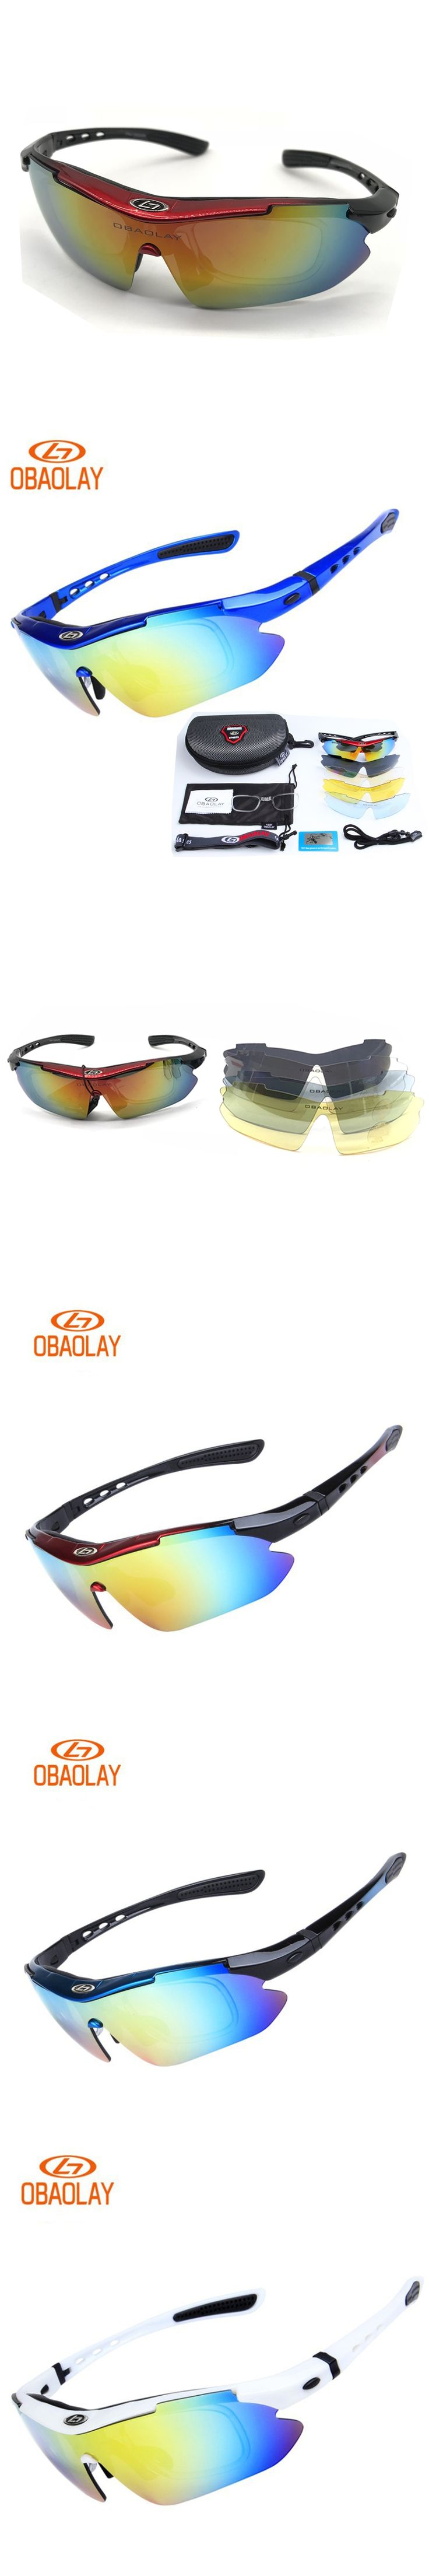 5 Lens Polarized Glasses Cycling Sunglasses Ski Bicycle Outdoor Sport Fishing Eyewear Glasses Cool gafas de sol polarizadas